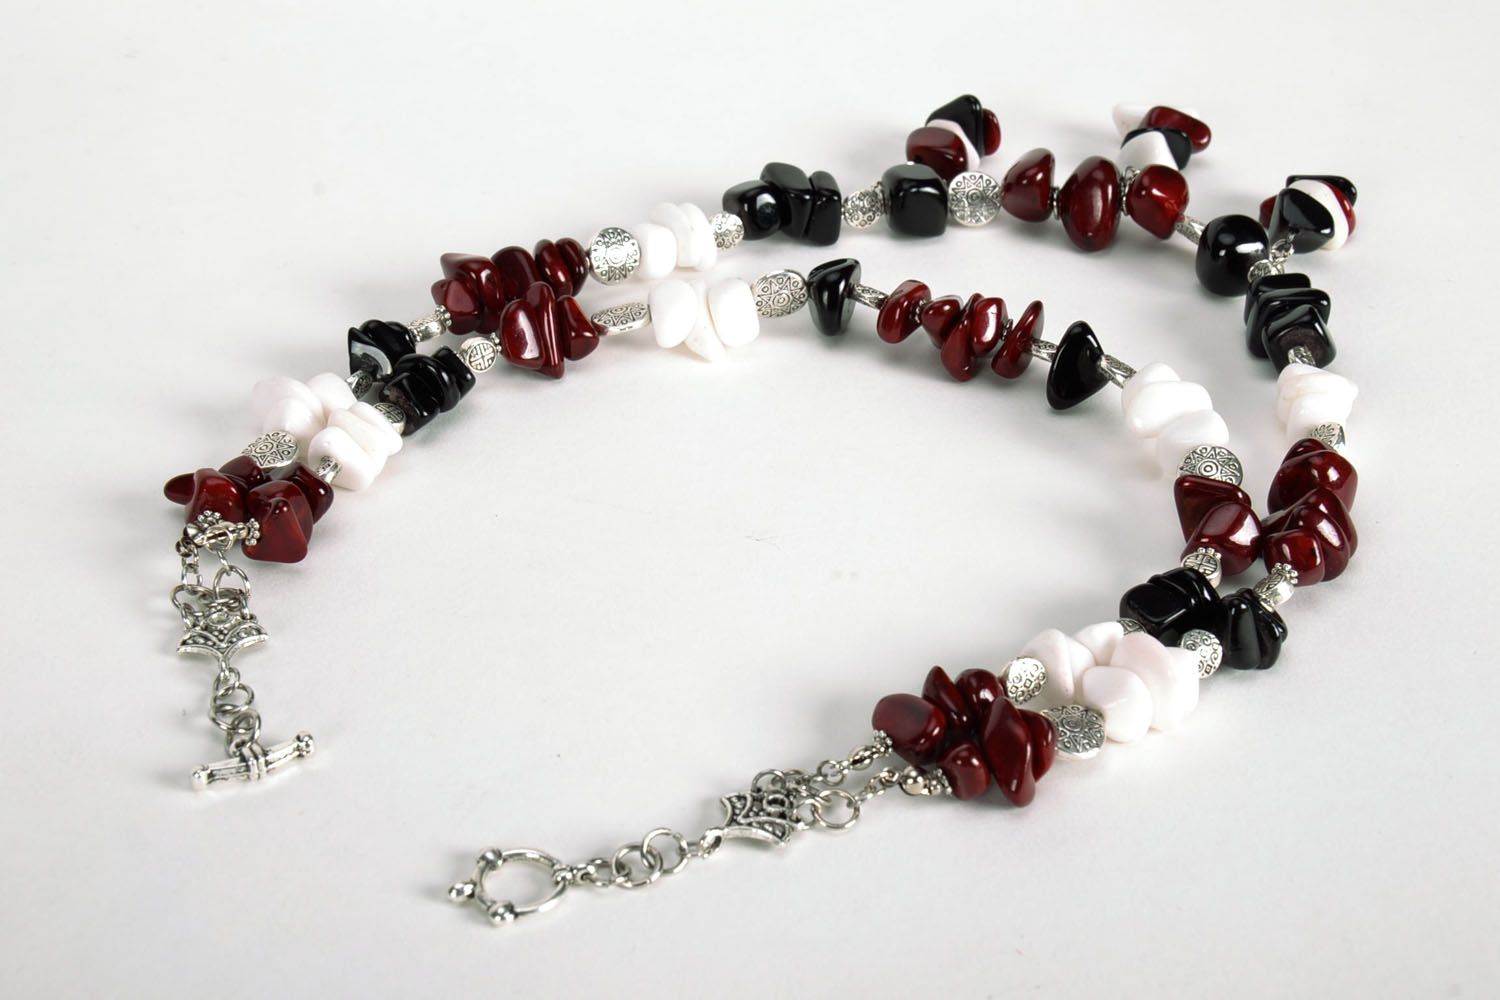 Homemade bead necklace with natural stones photo 2